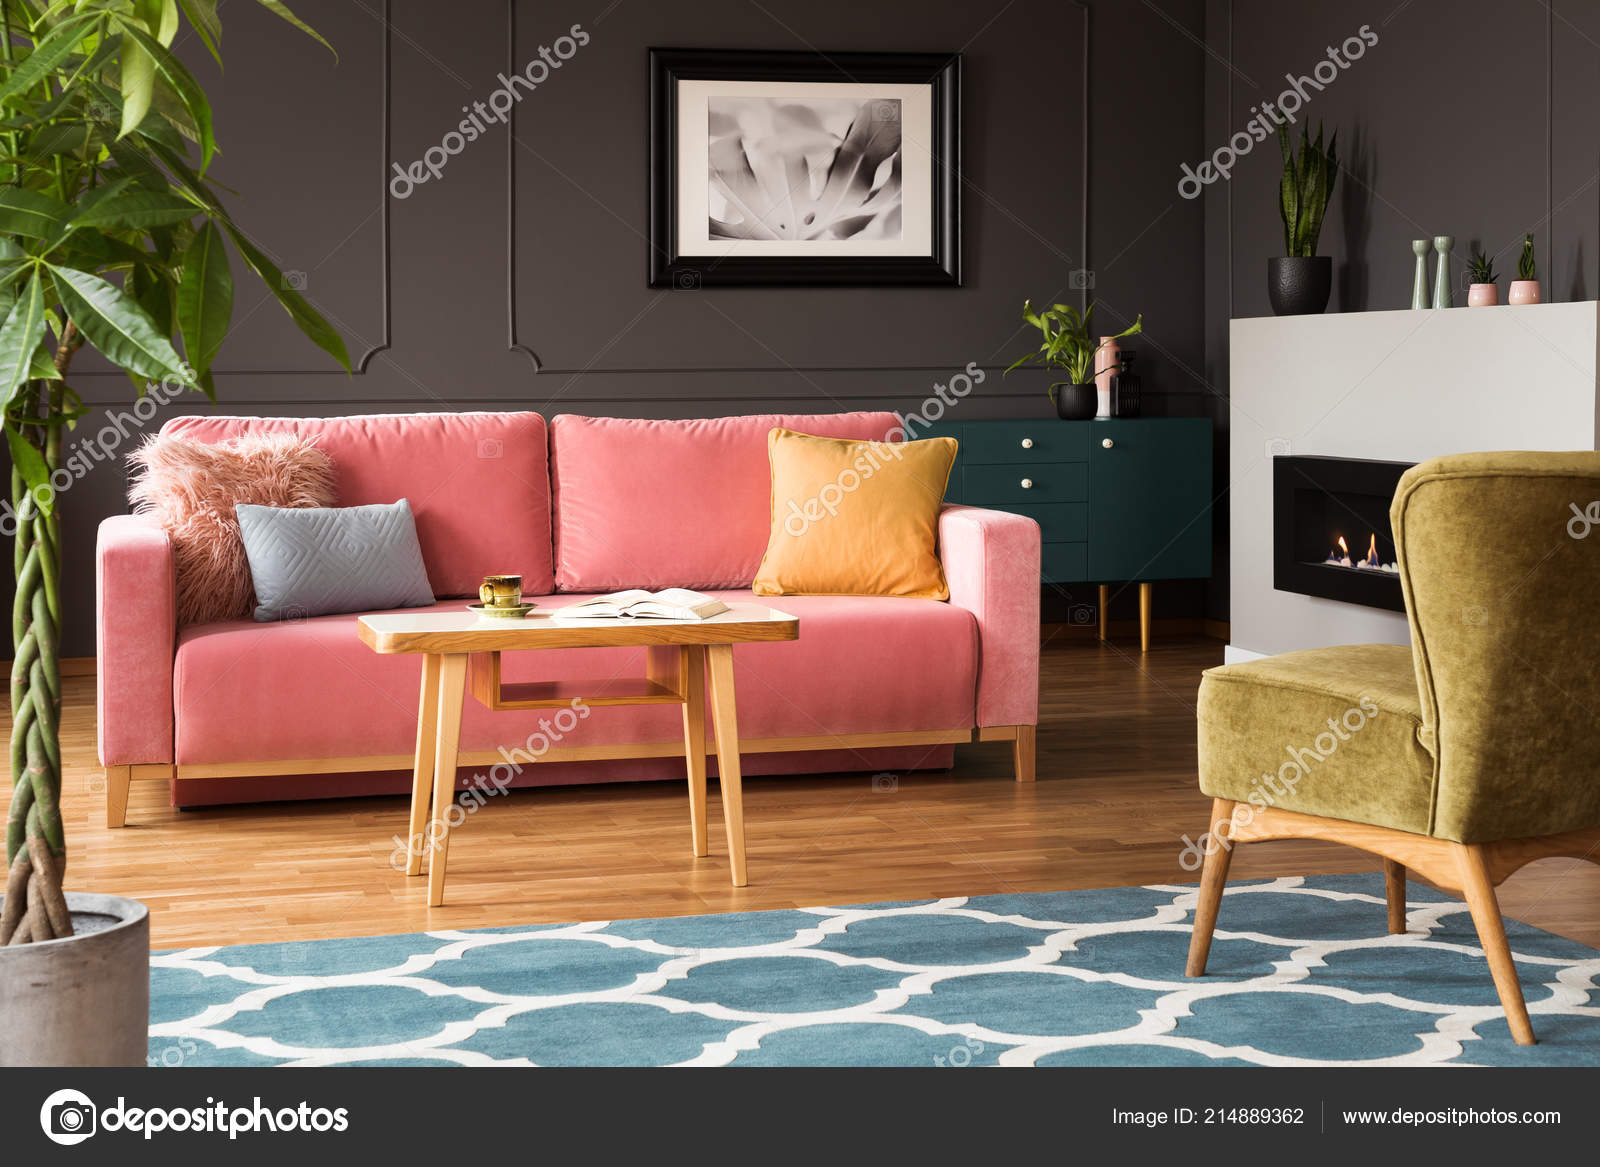 Green Armchair Pink Sofa Colorful Living Room Interior Blue ...